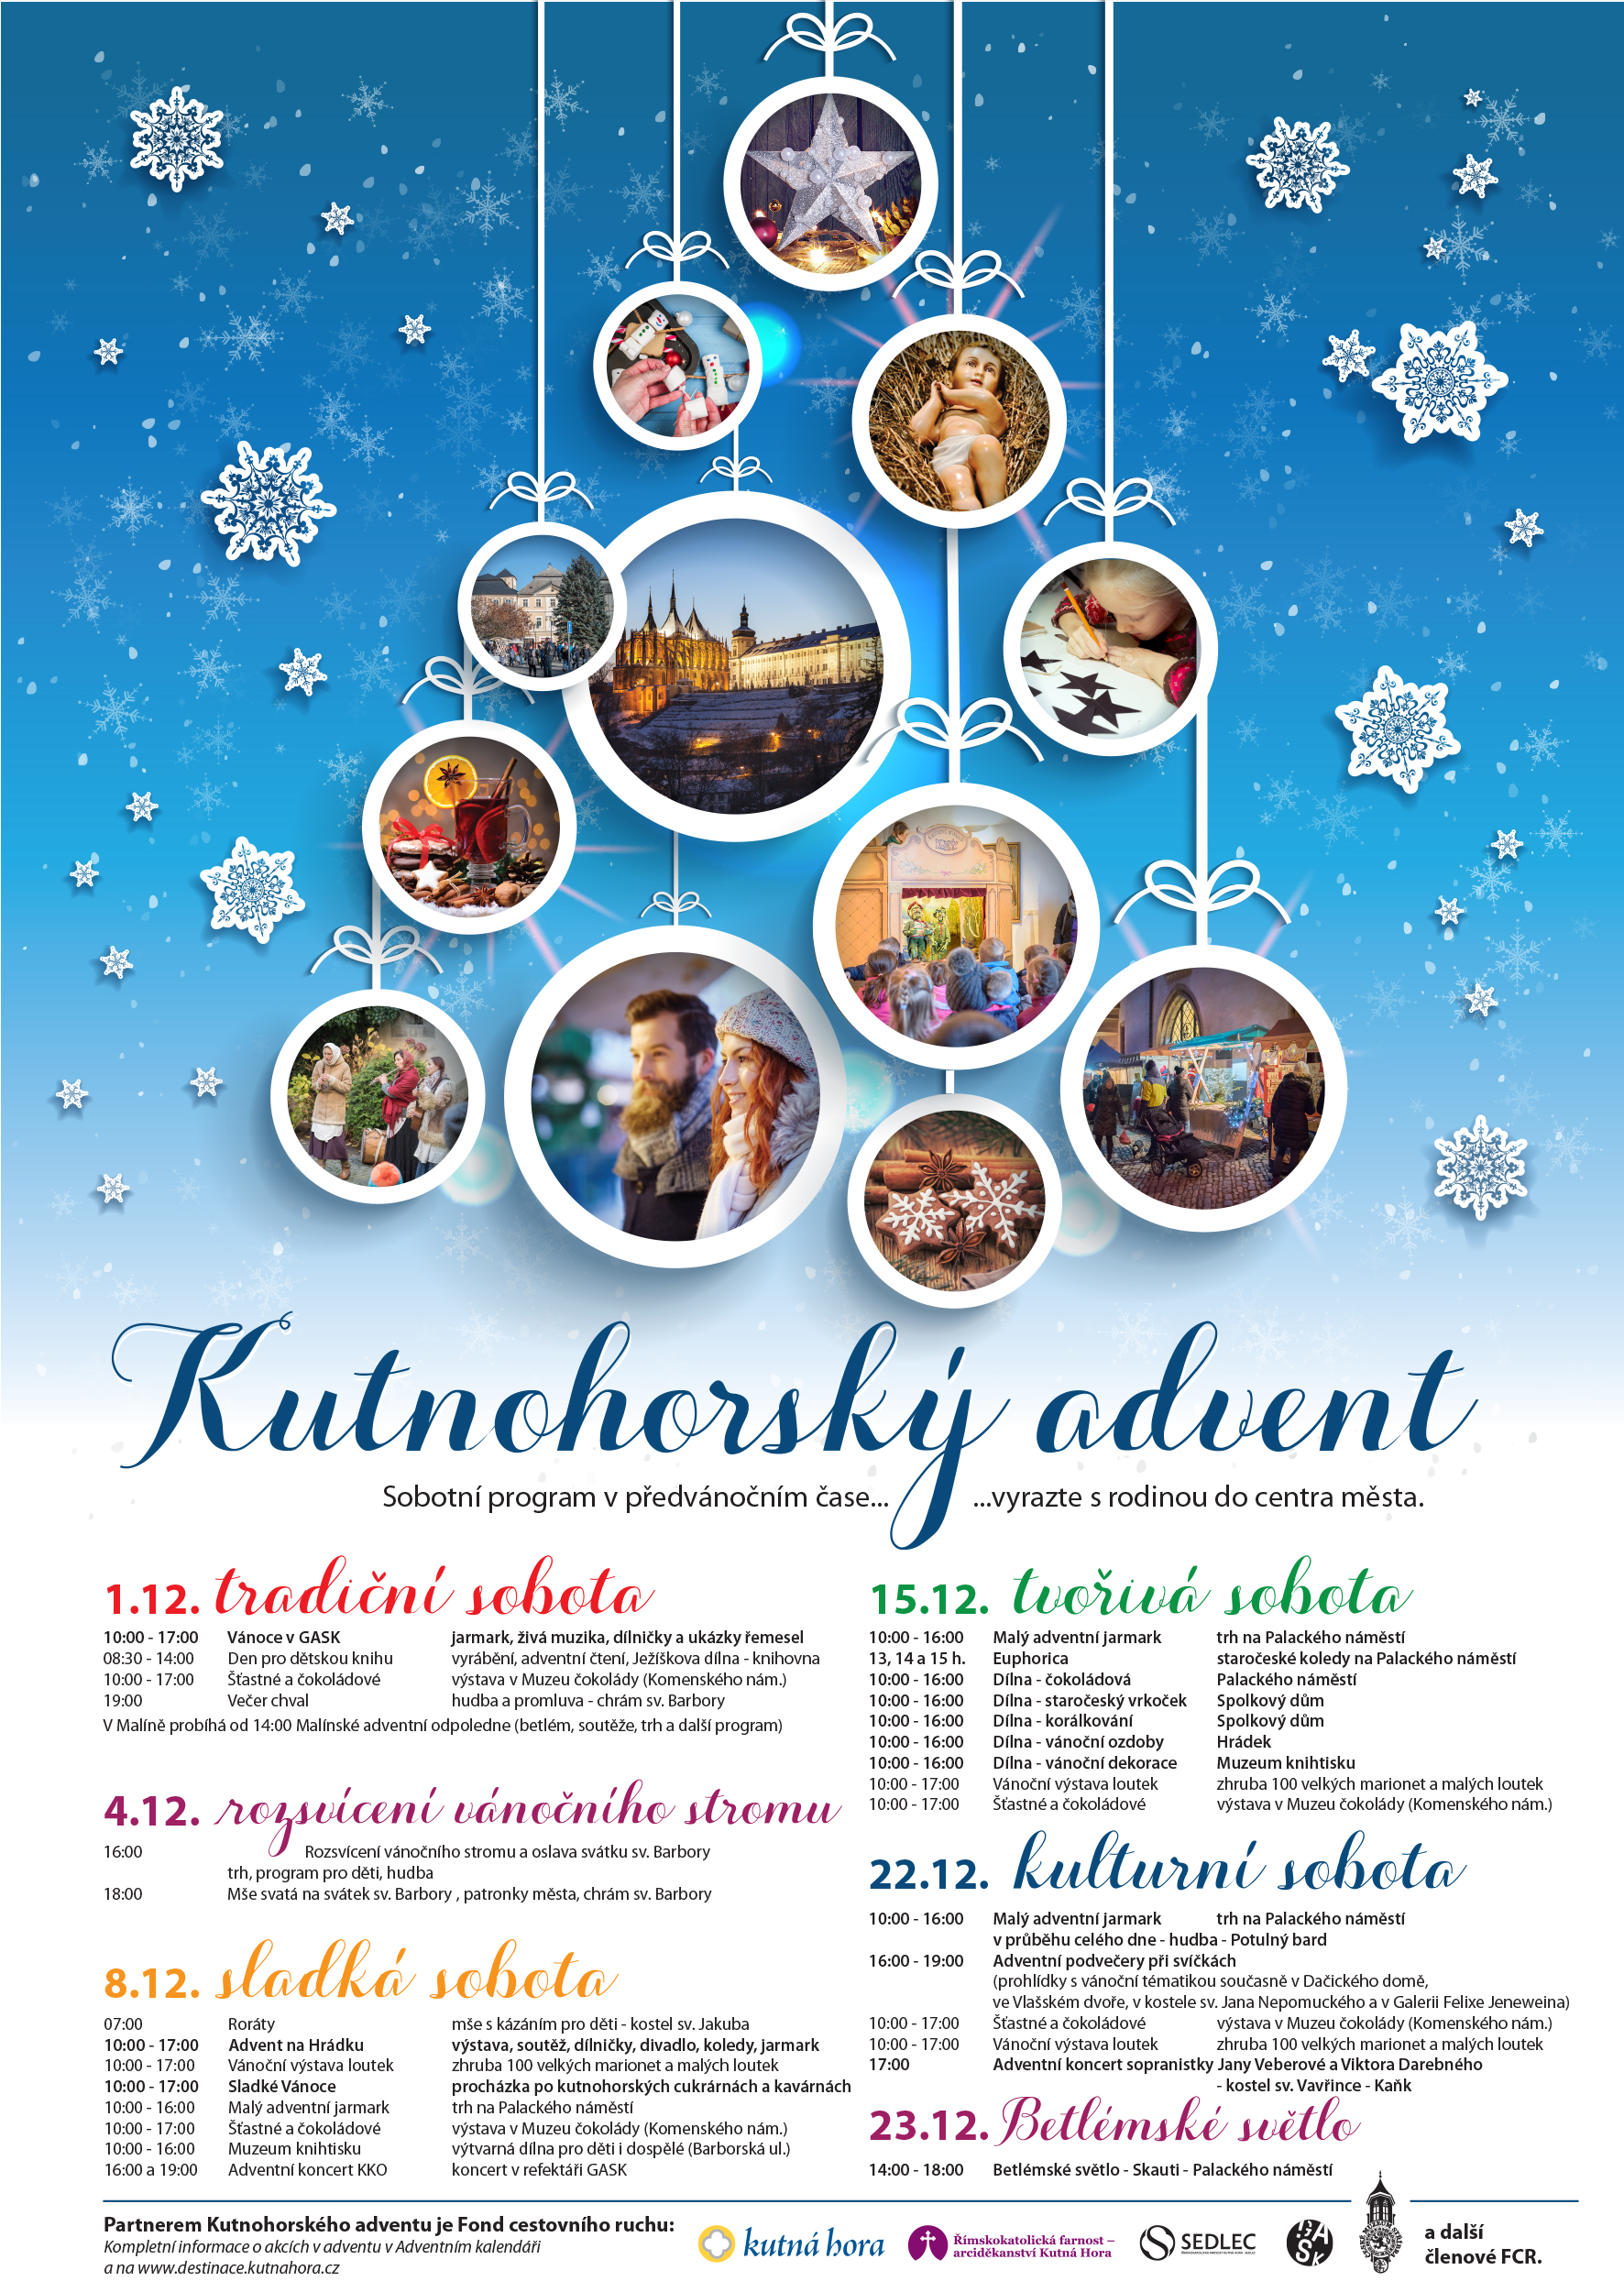 4746-kutnohorsky-advent.jpg